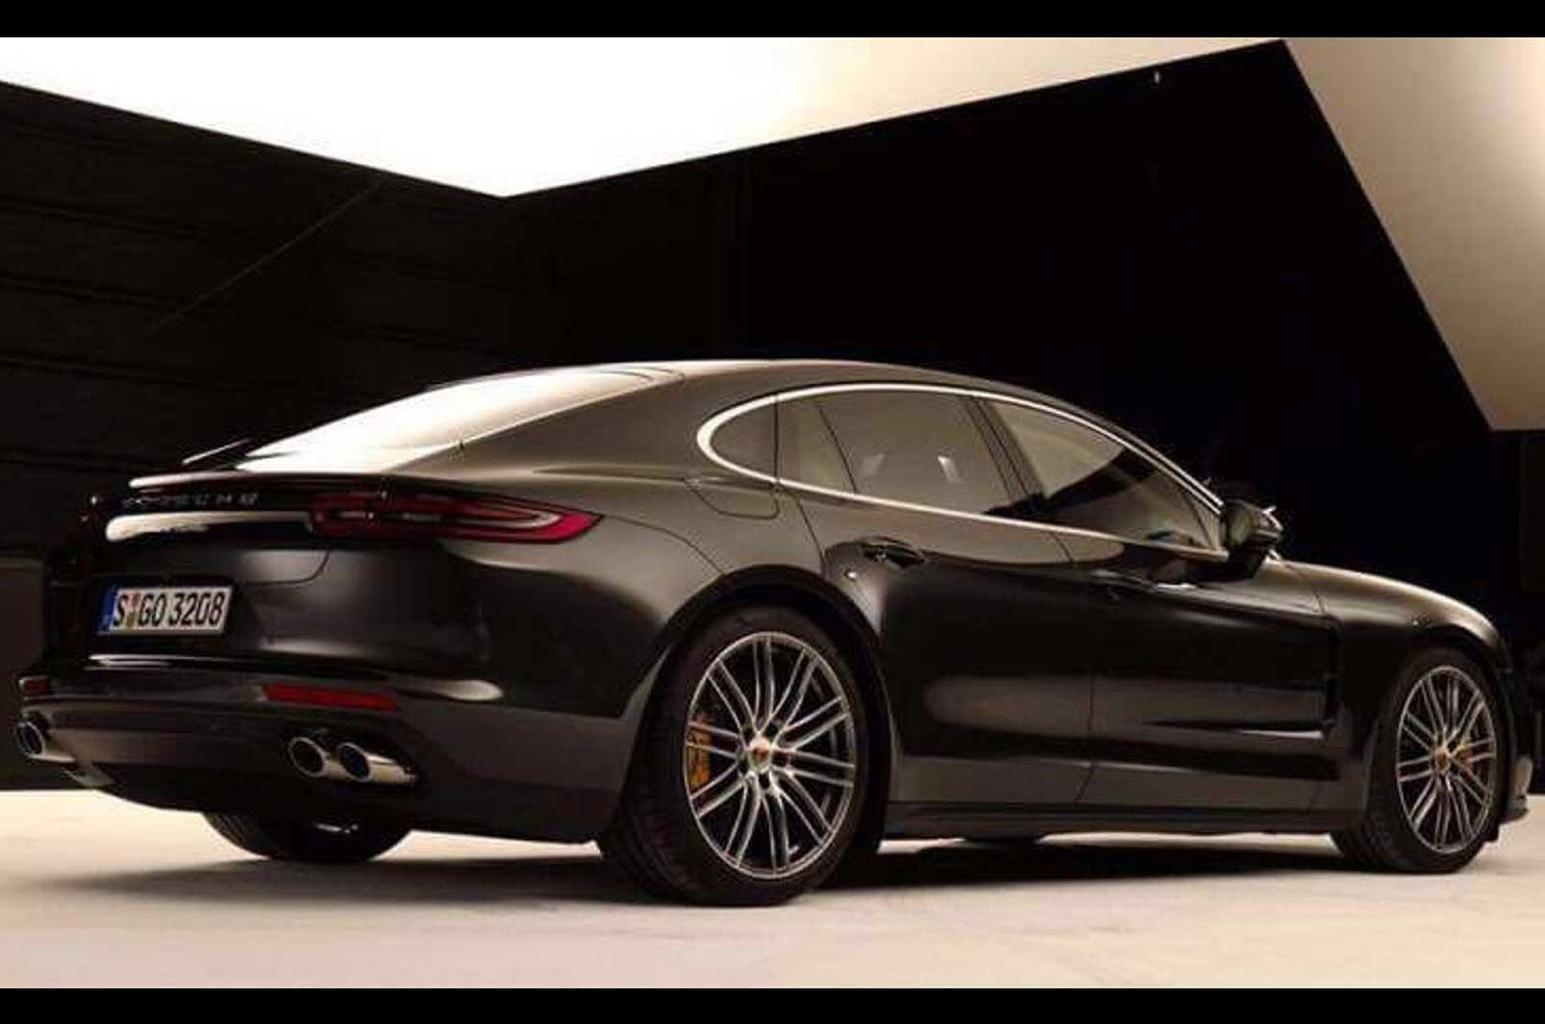 New Porsche Panamera - first pictures appear online